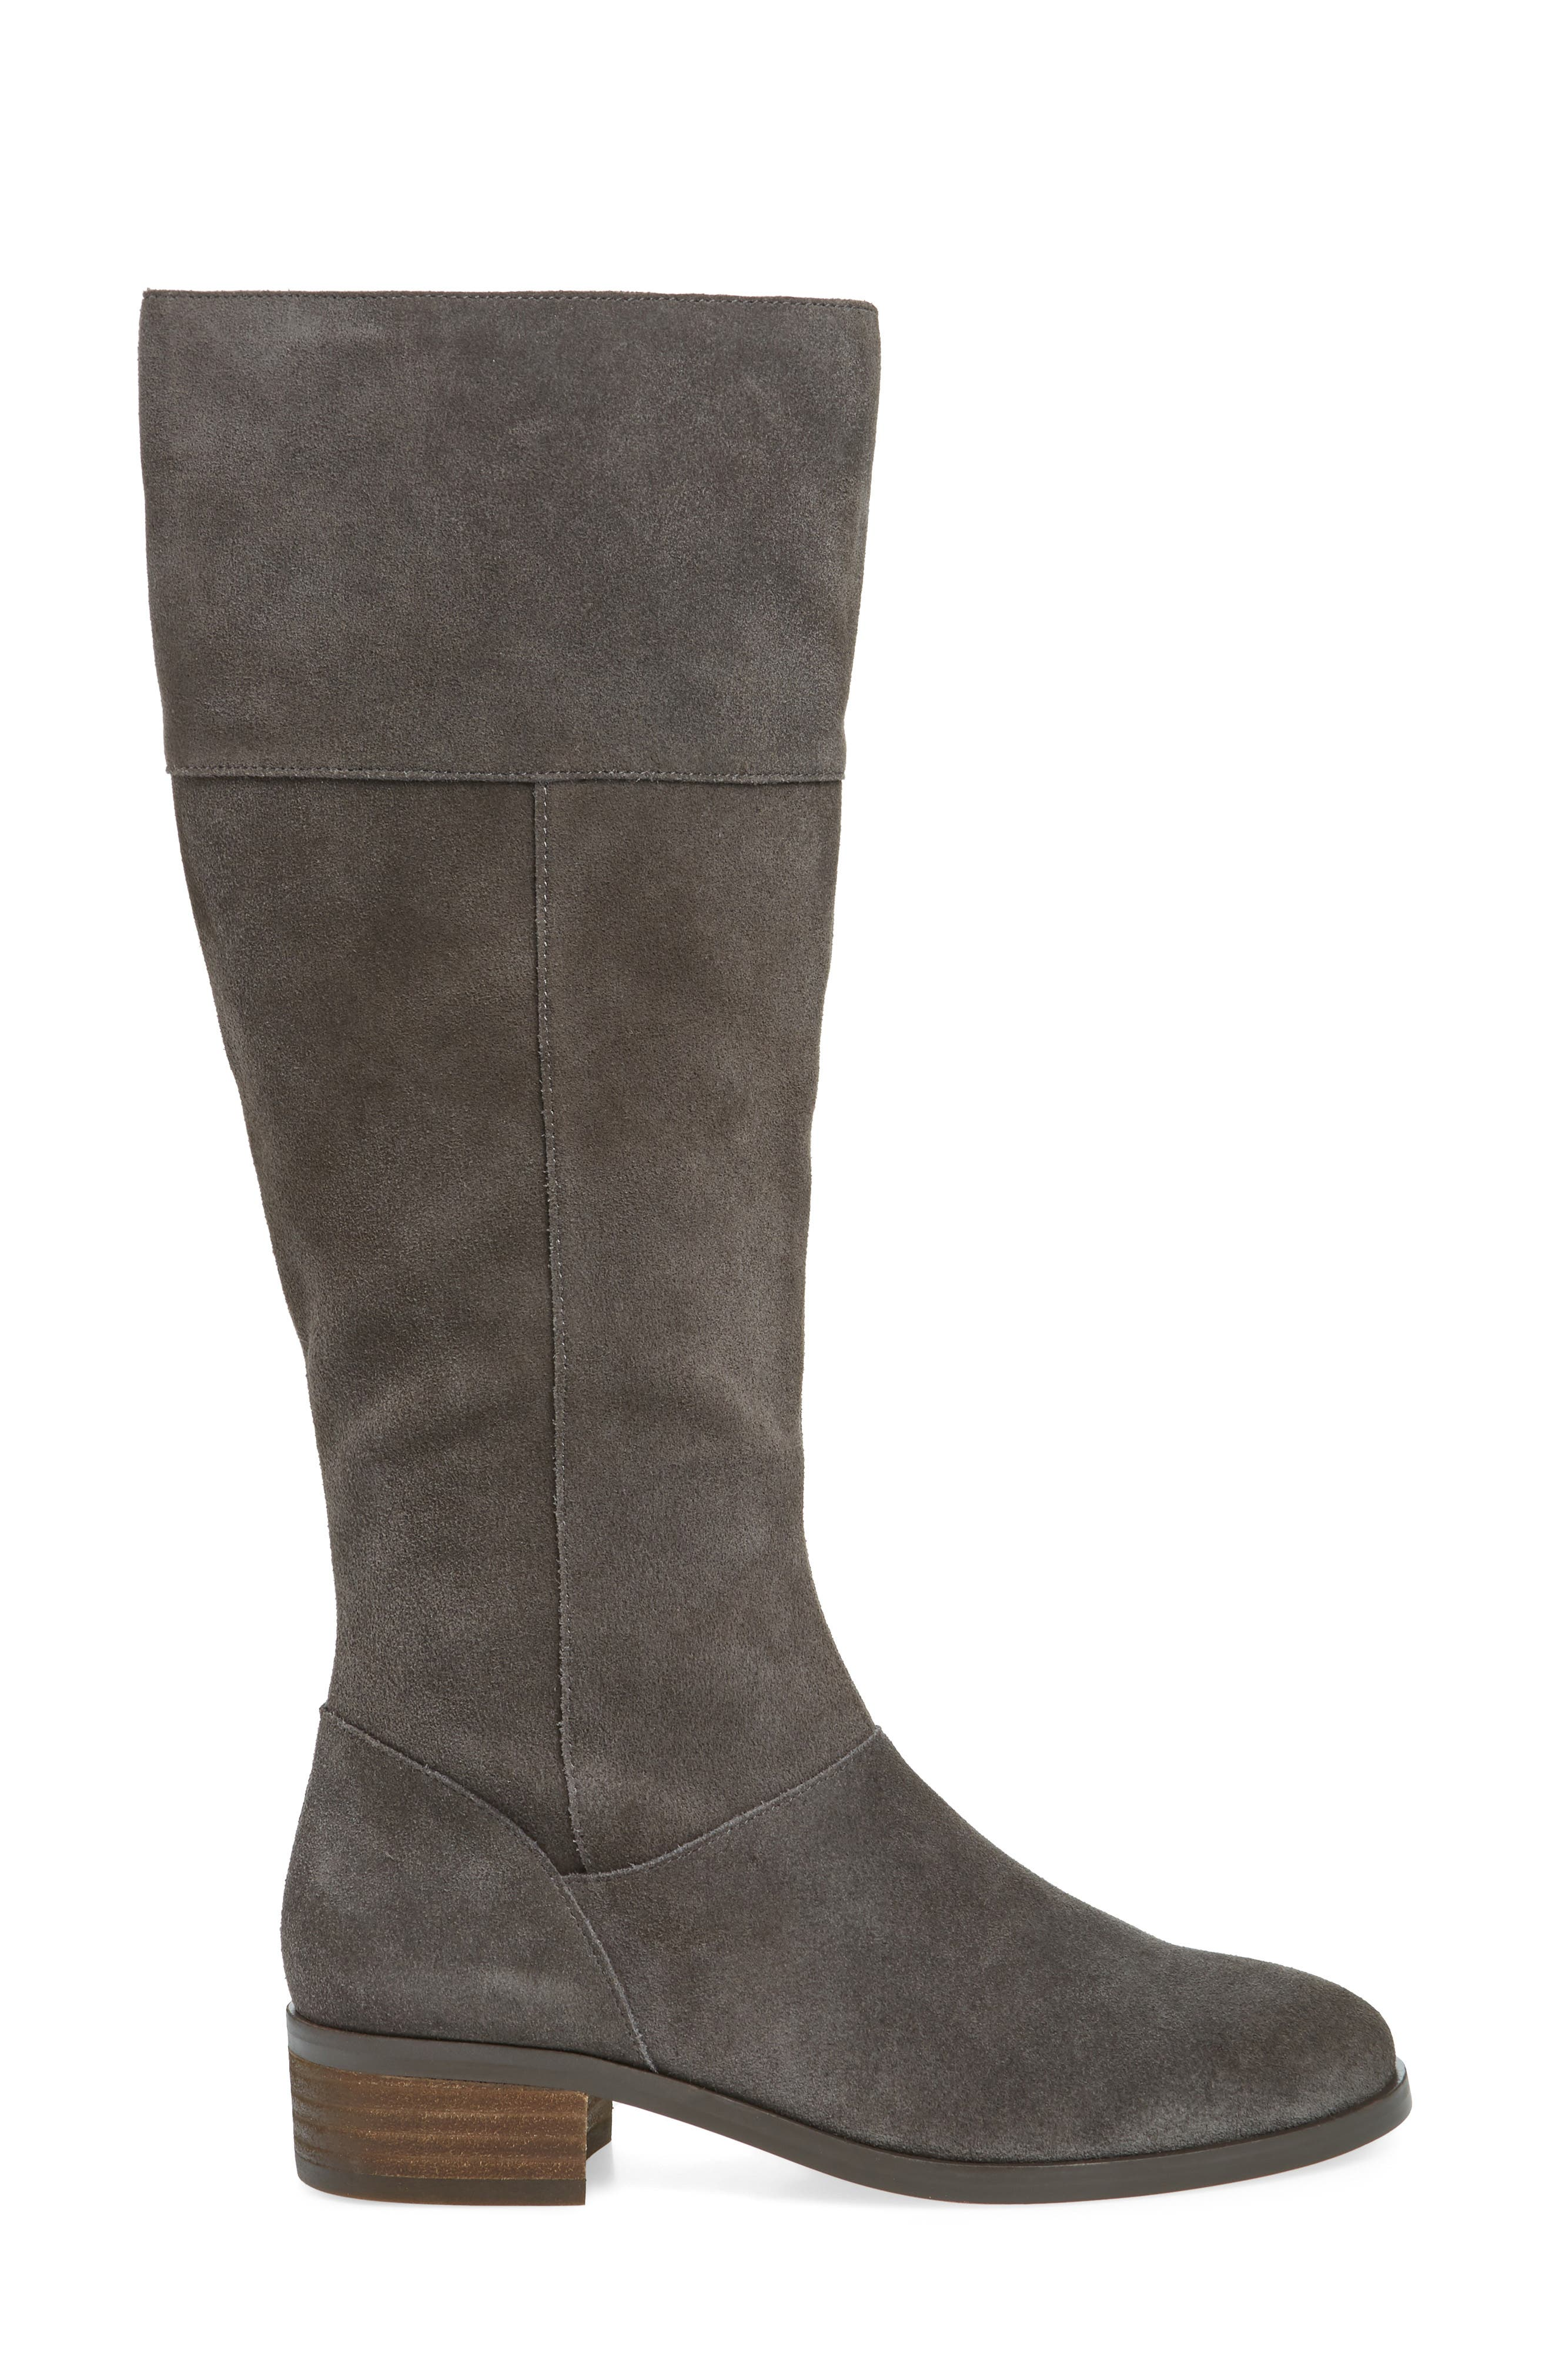 Carlie Knee High Boot,                             Alternate thumbnail 3, color,                             IRON SUEDE